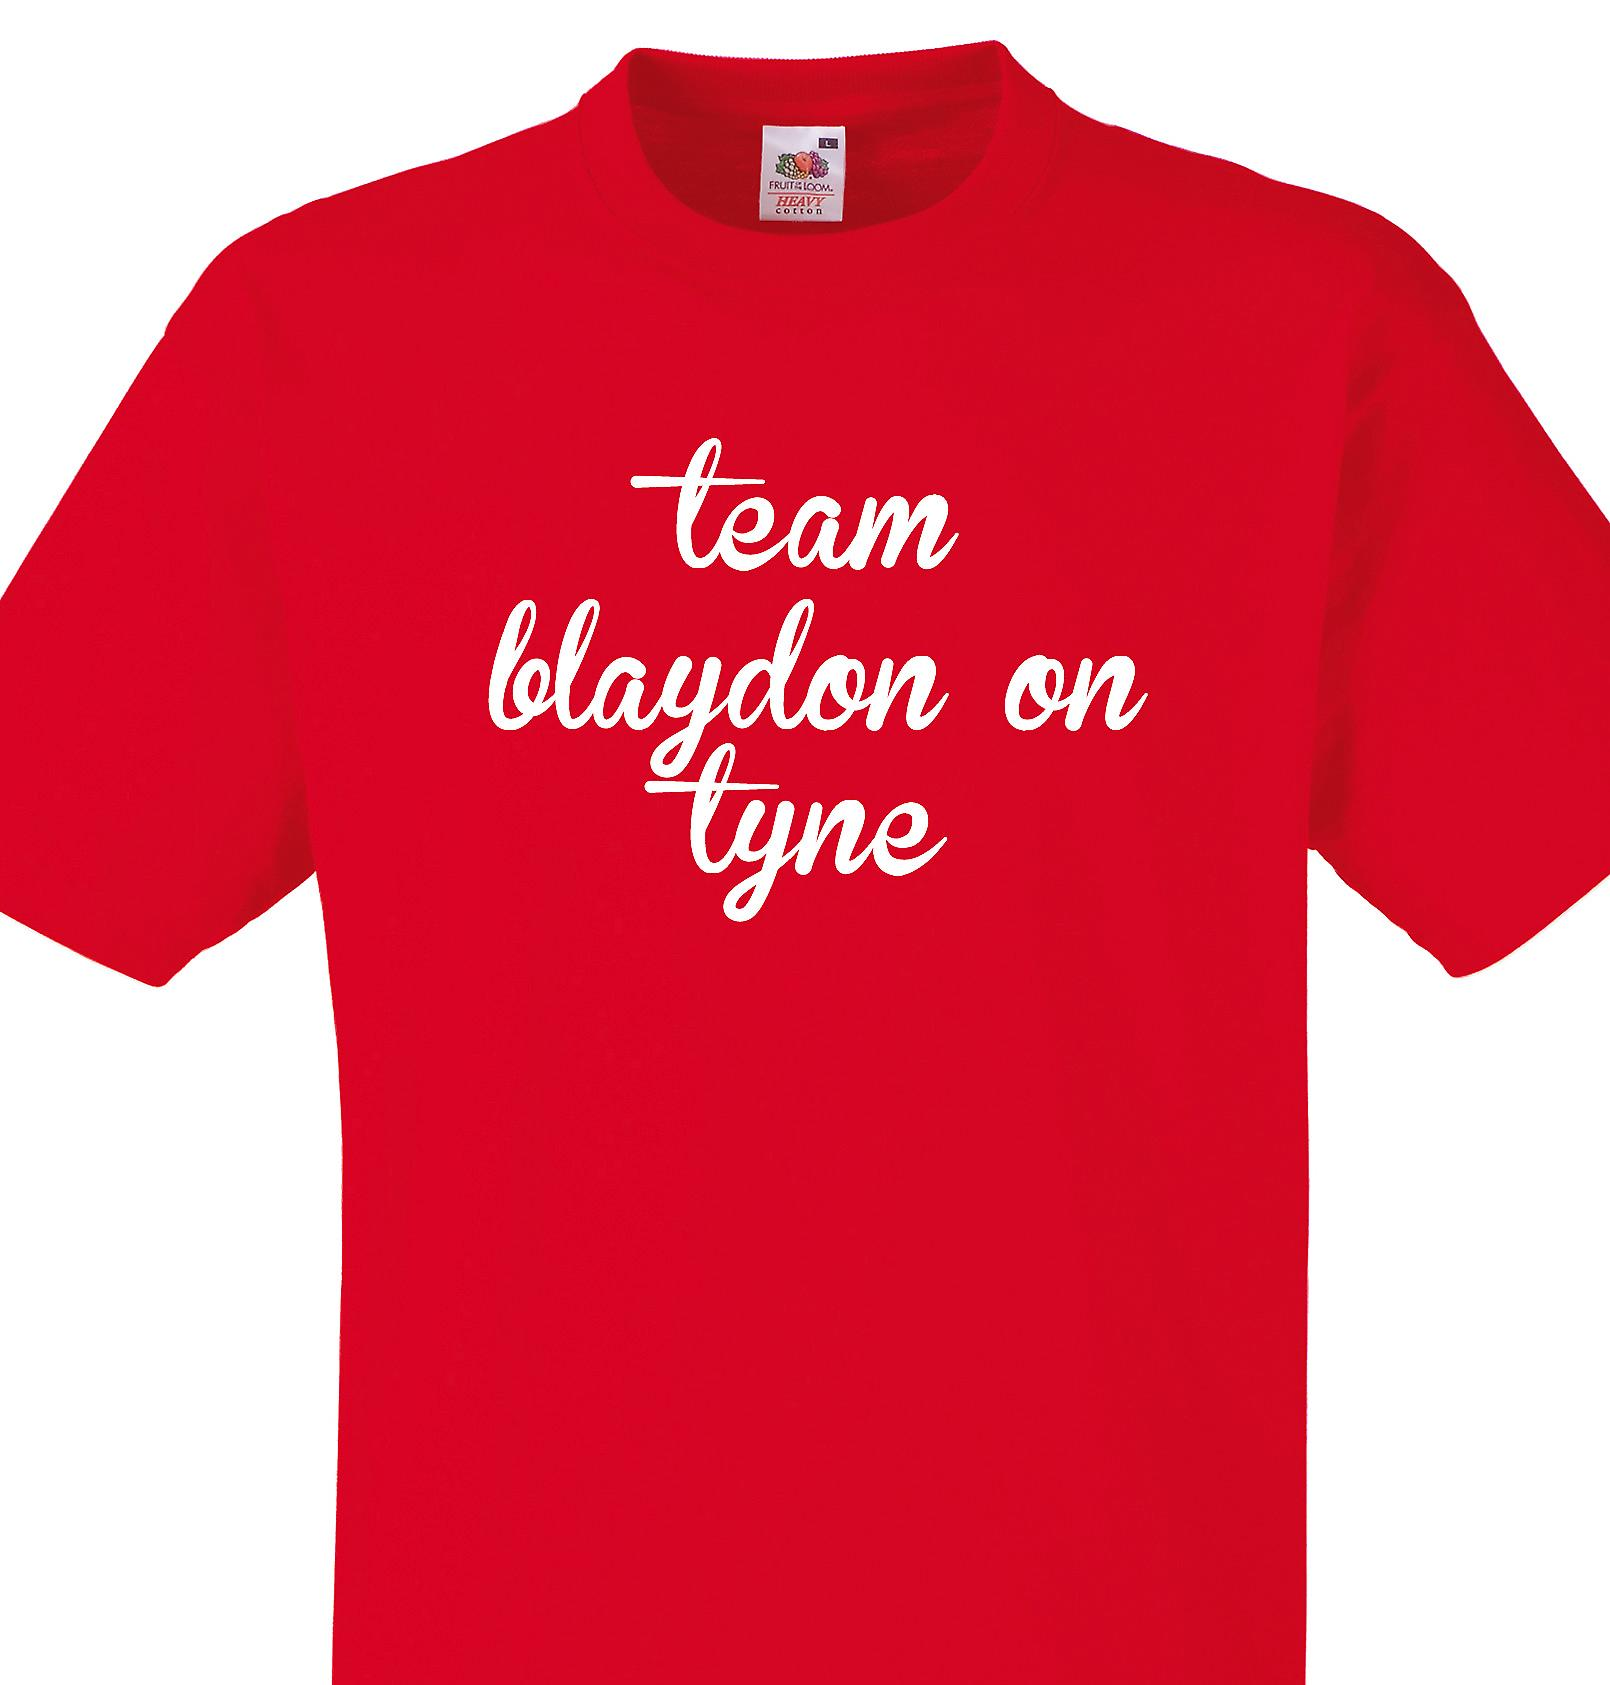 Team Blaydon on tyne Red T shirt